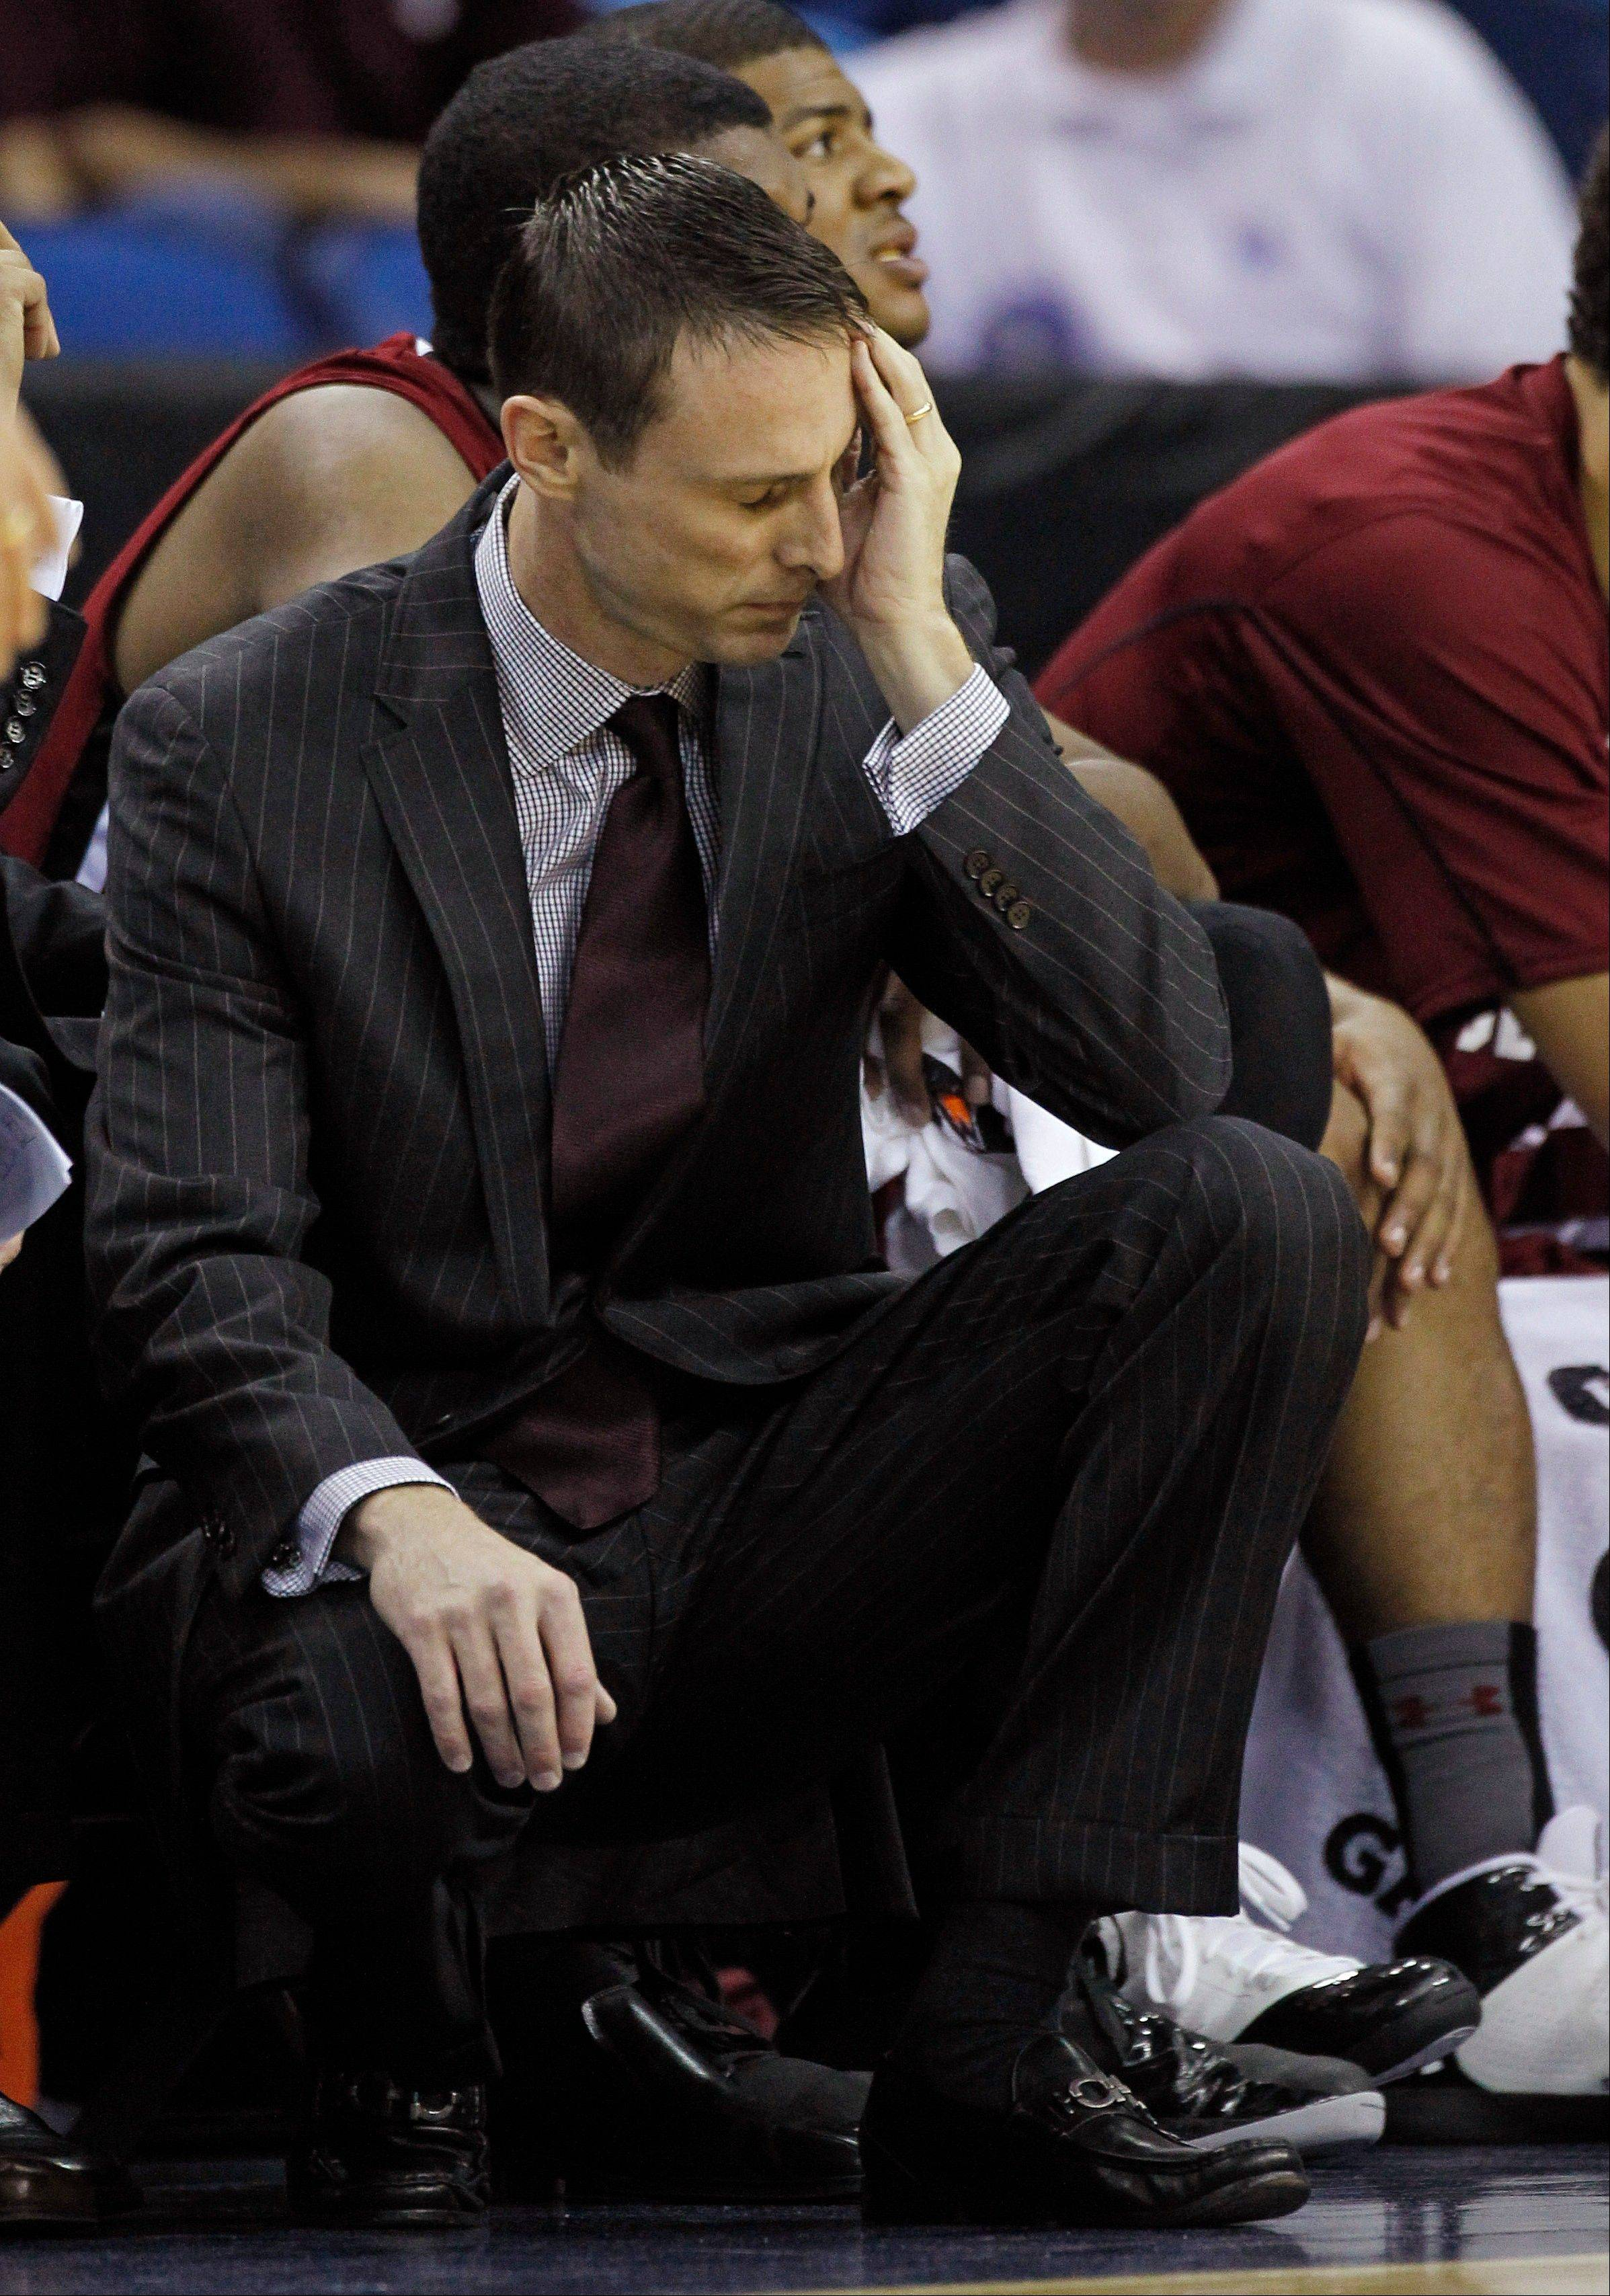 South Carolina fires men's basketball coach Horn